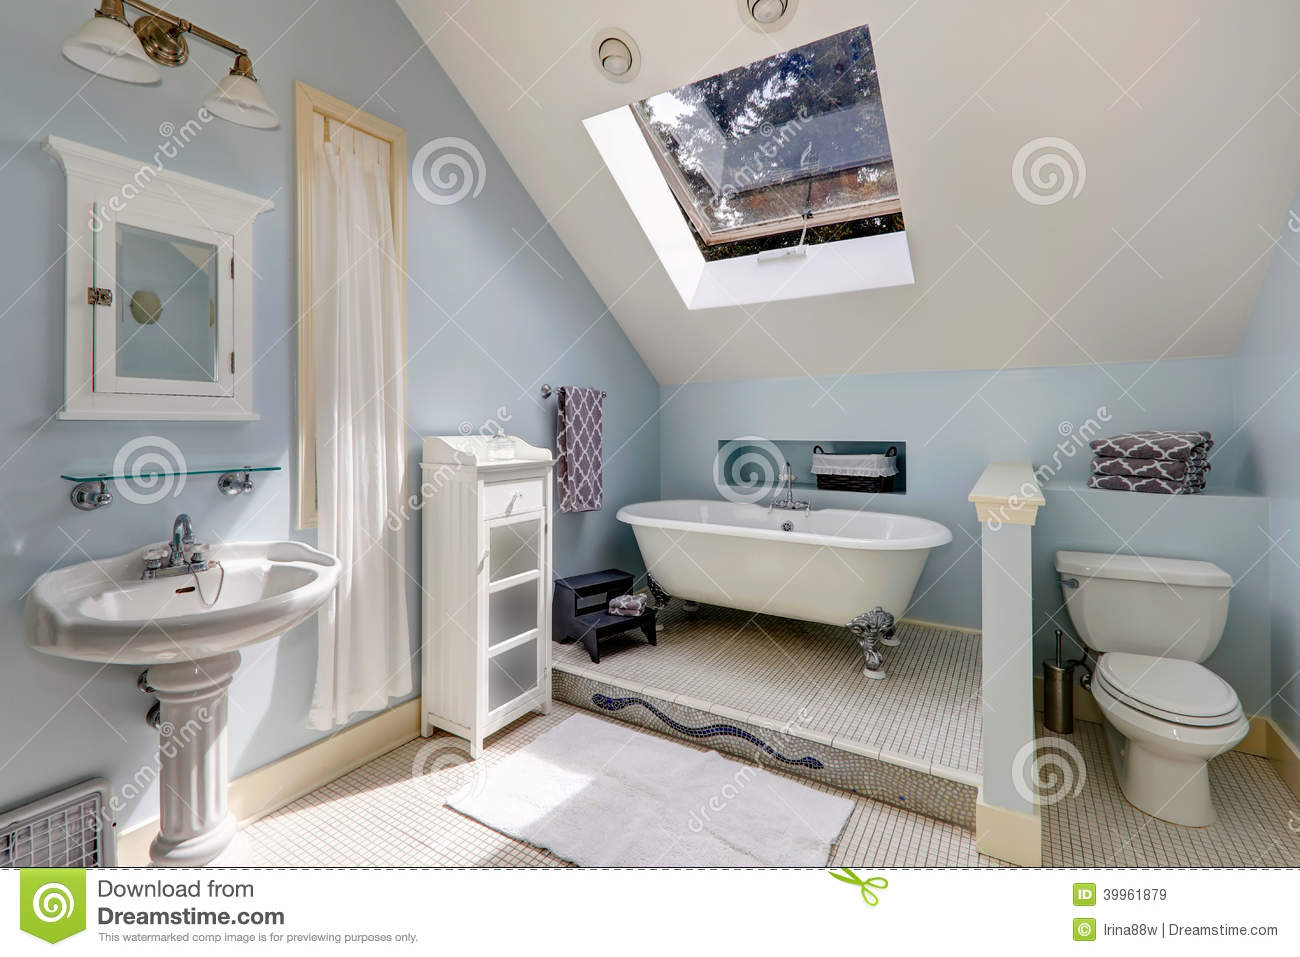 Velux Bathroom With Antique Bath Tub Stock Image Image Of Glass Vaulted 39961879